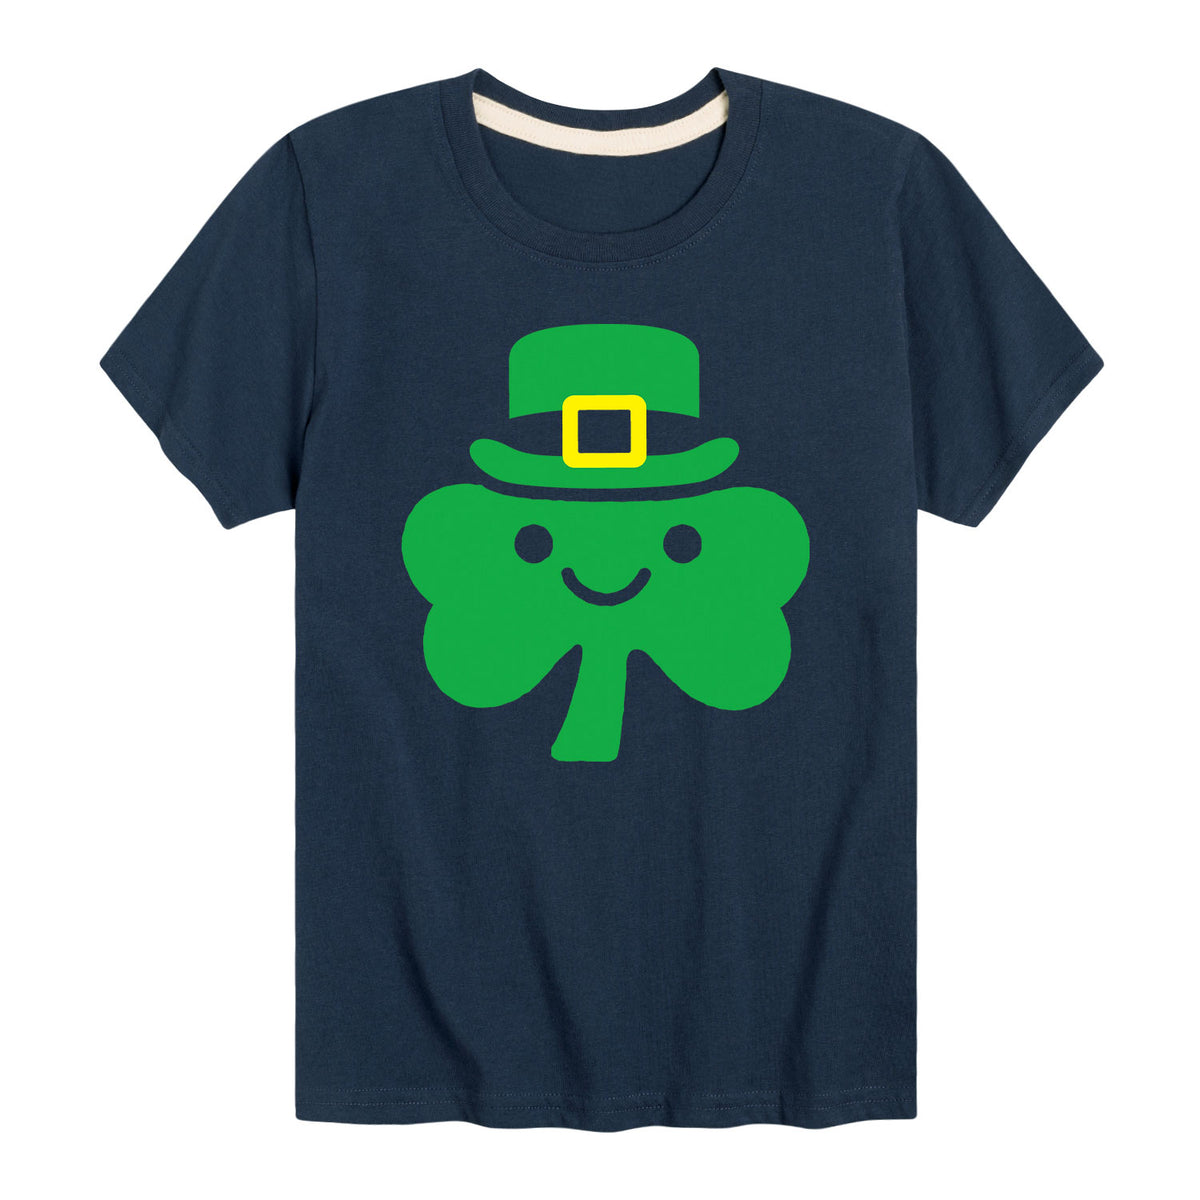 Happy Clover - Youth & Toddler Short Sleeve T-Shirt